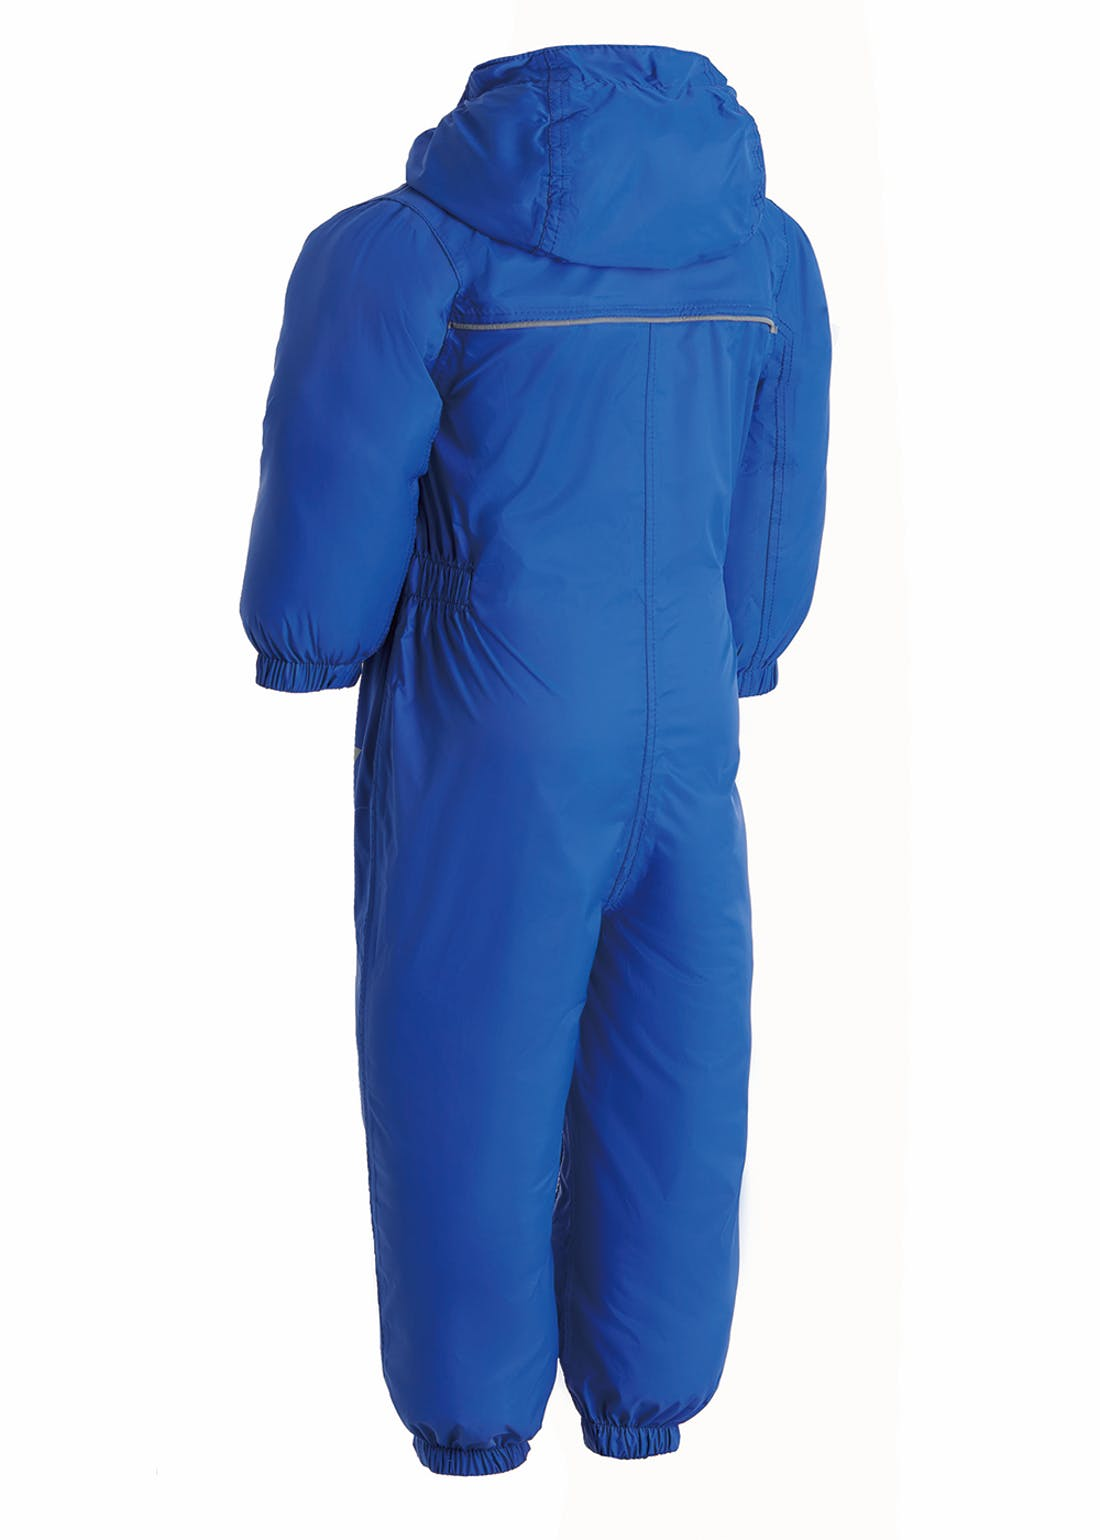 Kids Regatta Blue Waterproof Puddle Suit (12mths-5yrs)